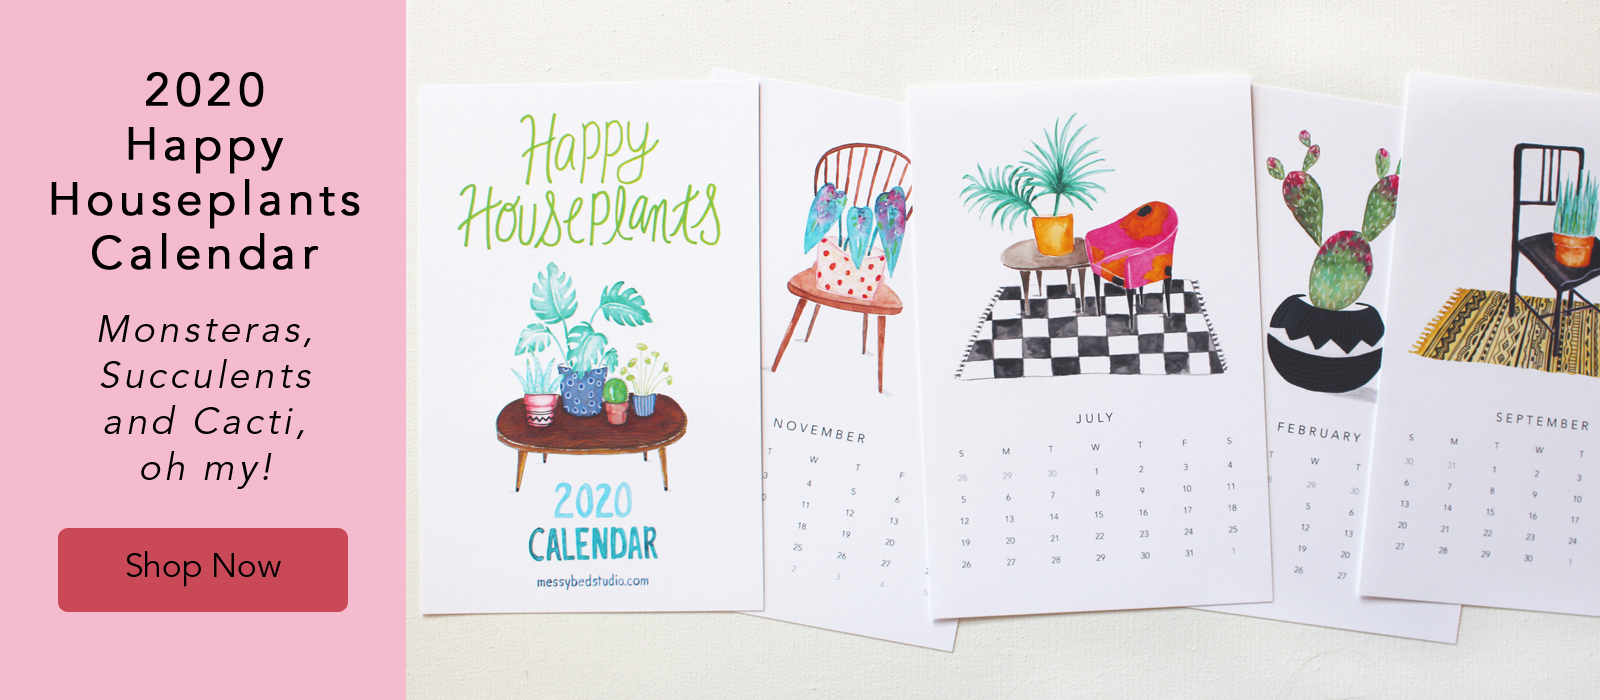 2020 Happy Houseplants Calendar pages by messy bed studio